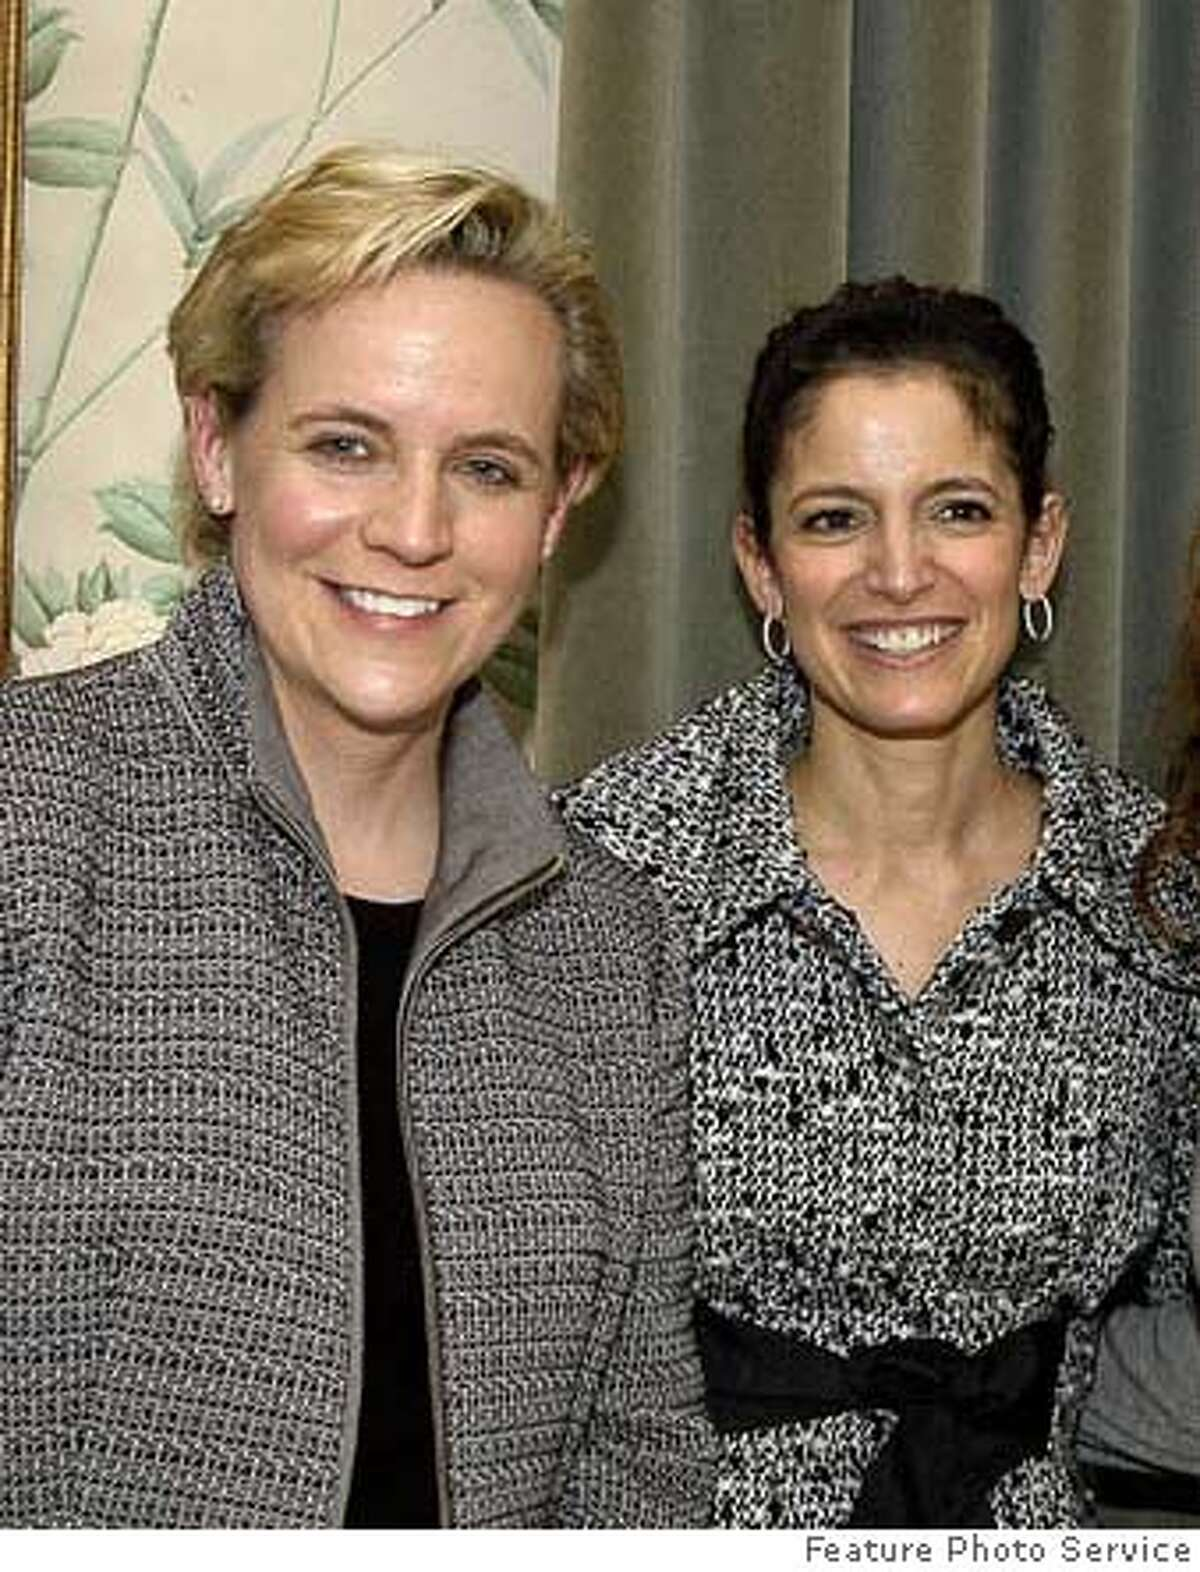 Glamour Editor in Chief Cindi Leive with panelist Mary Cheney at the magazine's